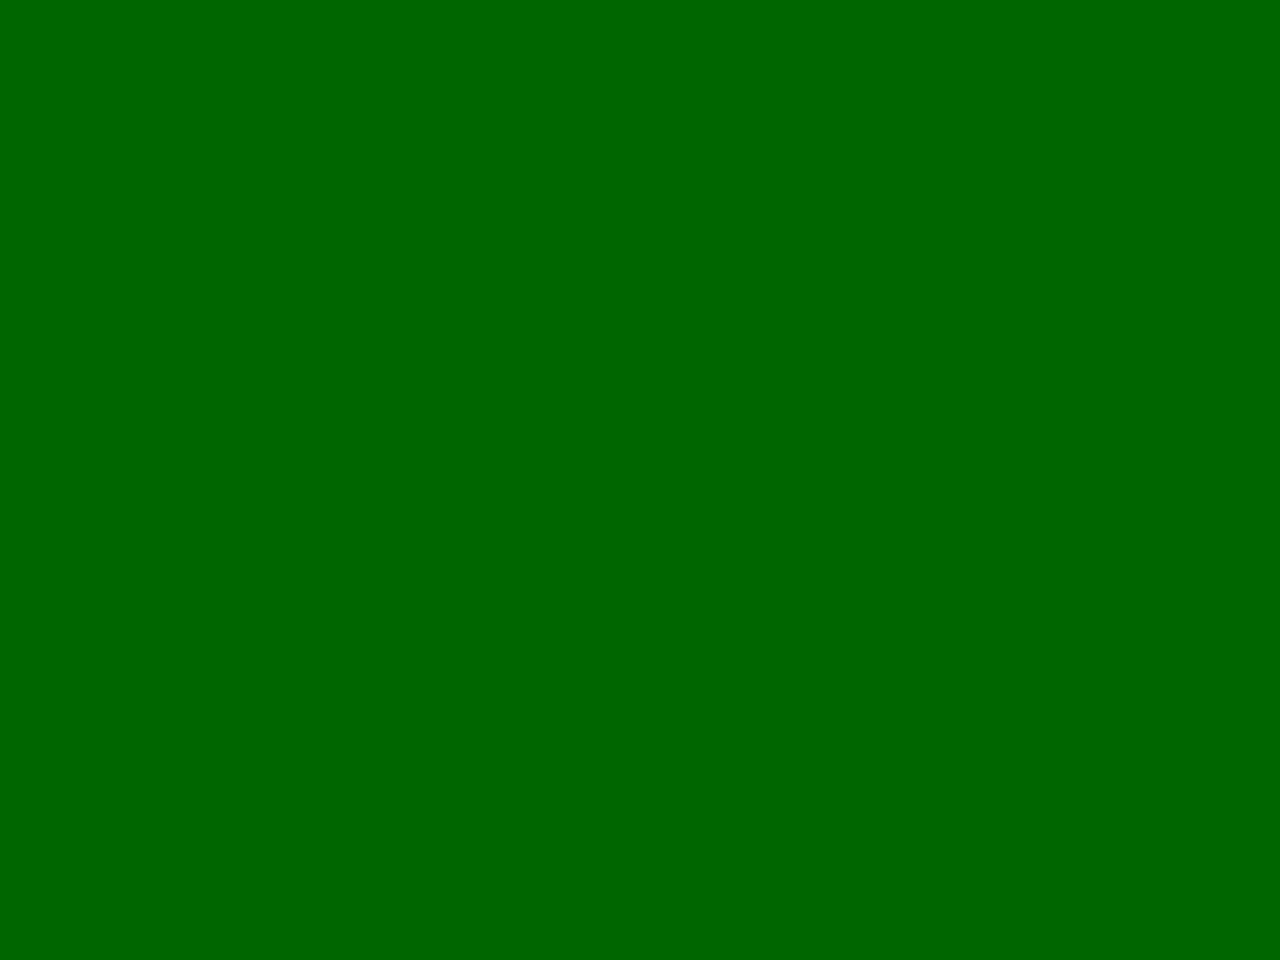 1280x960 Pakistan Green Solid Color Background